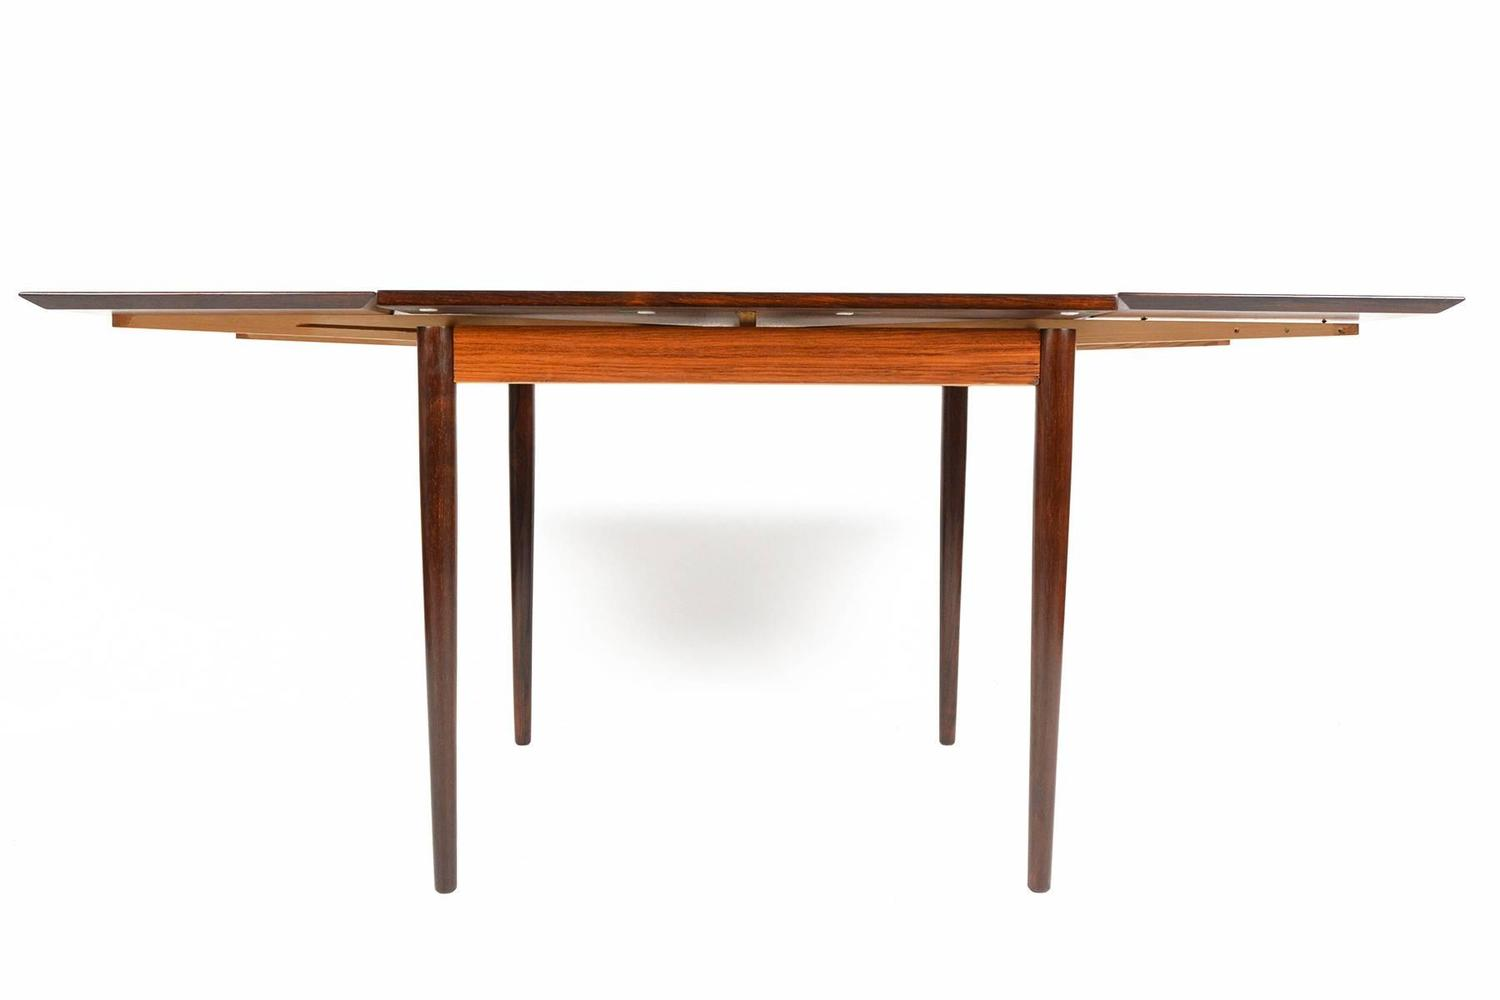 Wwwdylanpfohlcom Square Dining Table With Leaf Modern